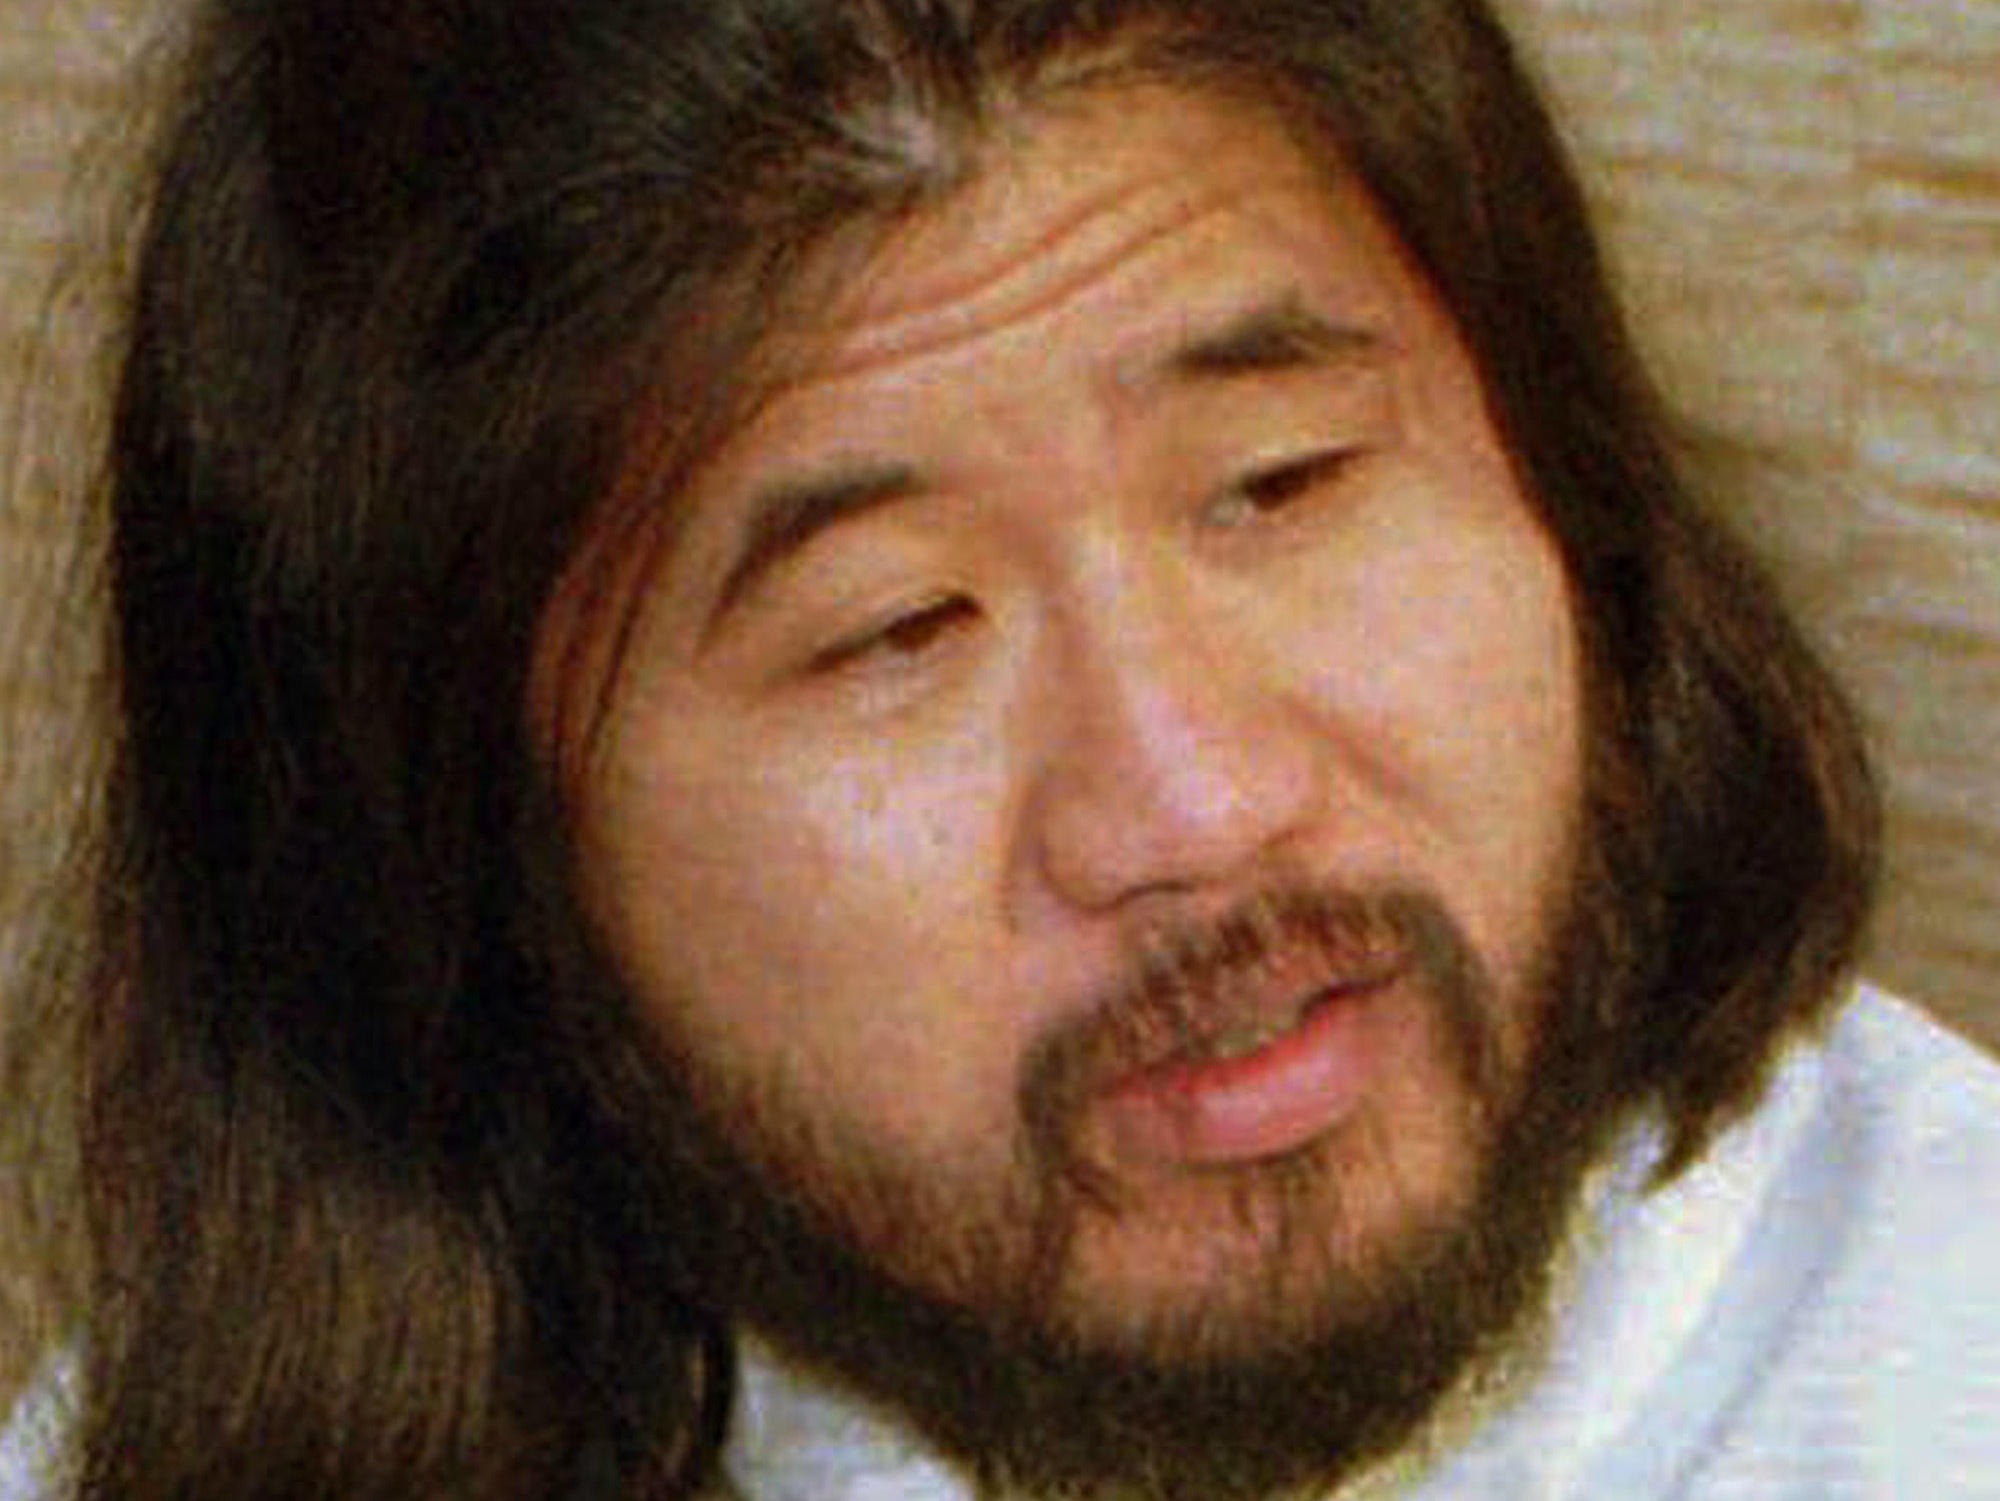 Japan executes leader, followers of sarin attack doomsday cult